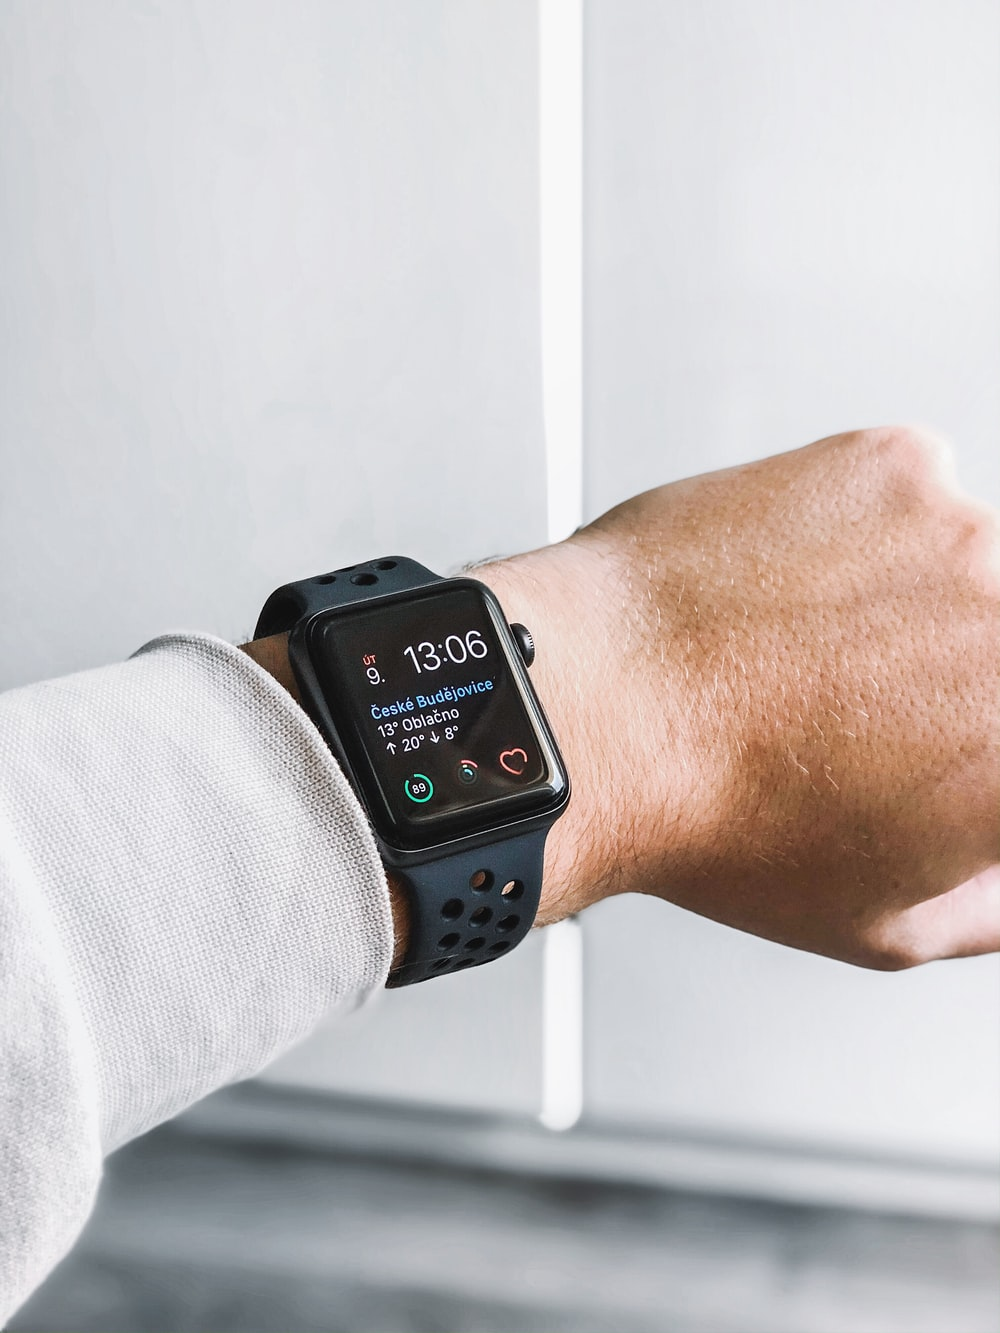 space black stainless steel Apple Watch at 13:05